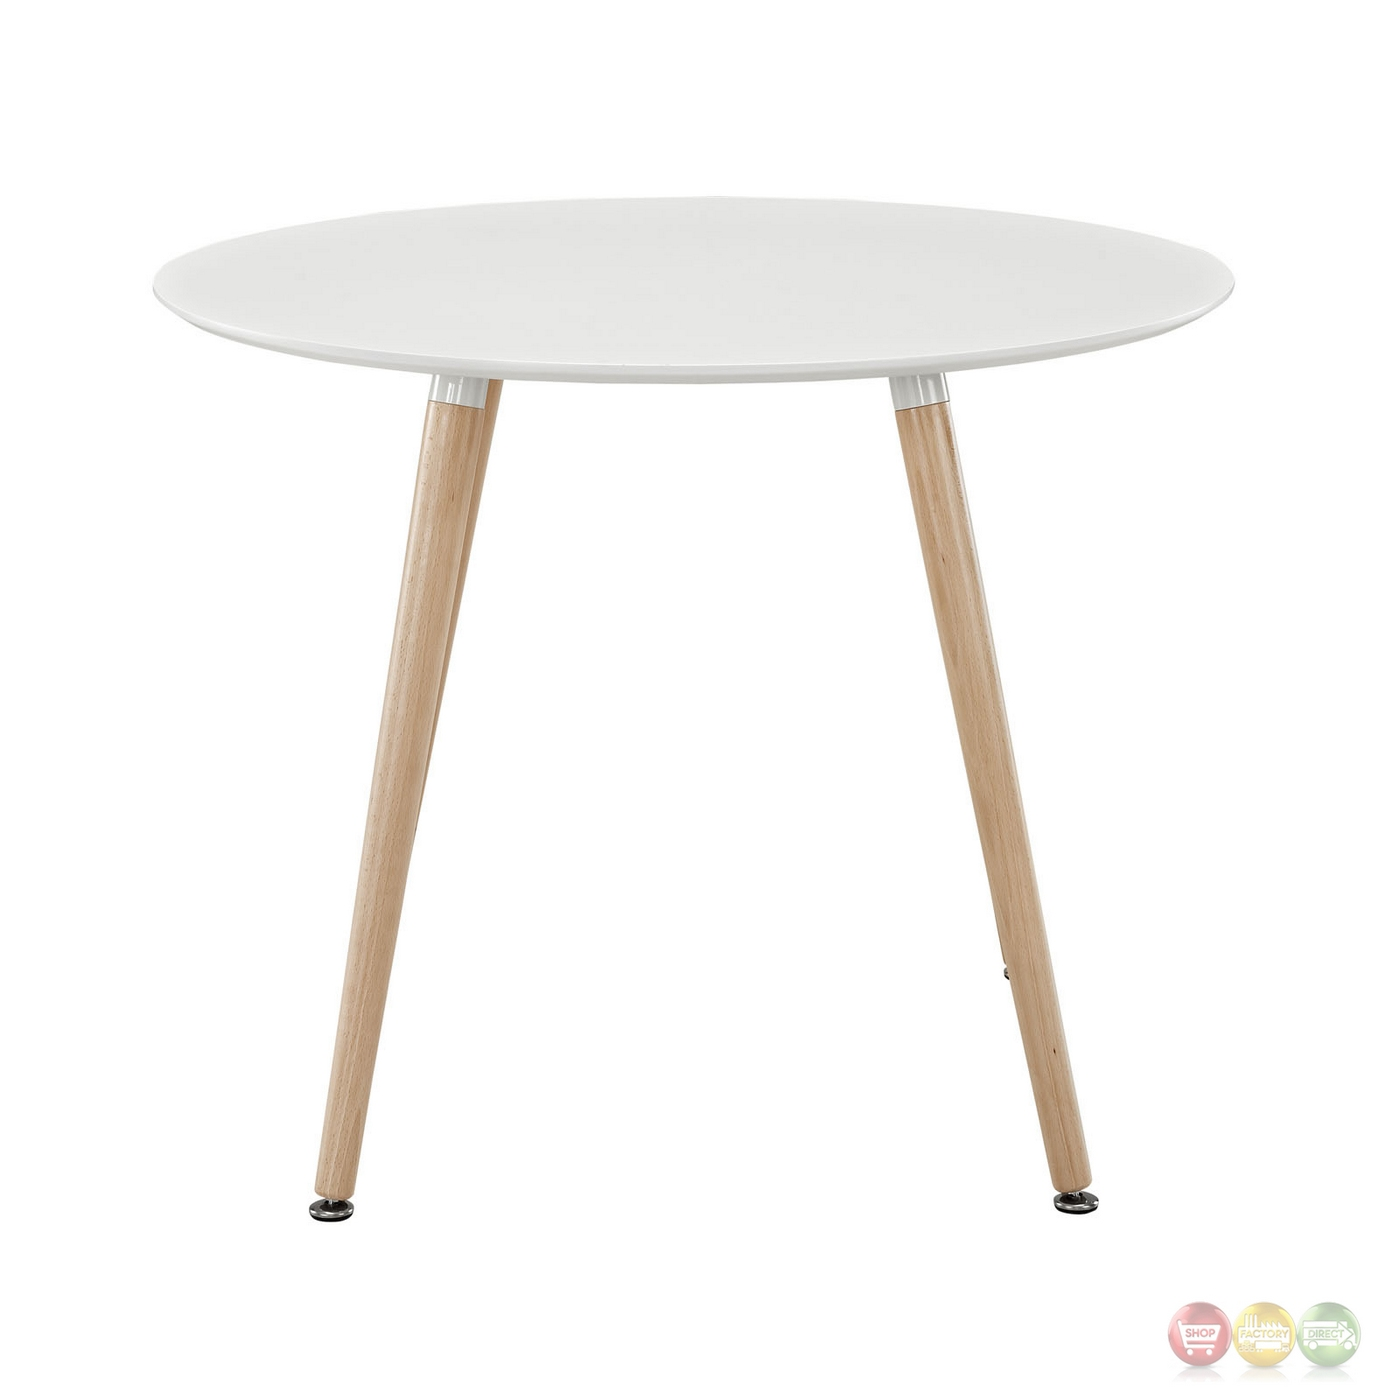 Track Contemporary 40 Quot Round Wooden Dining Table White